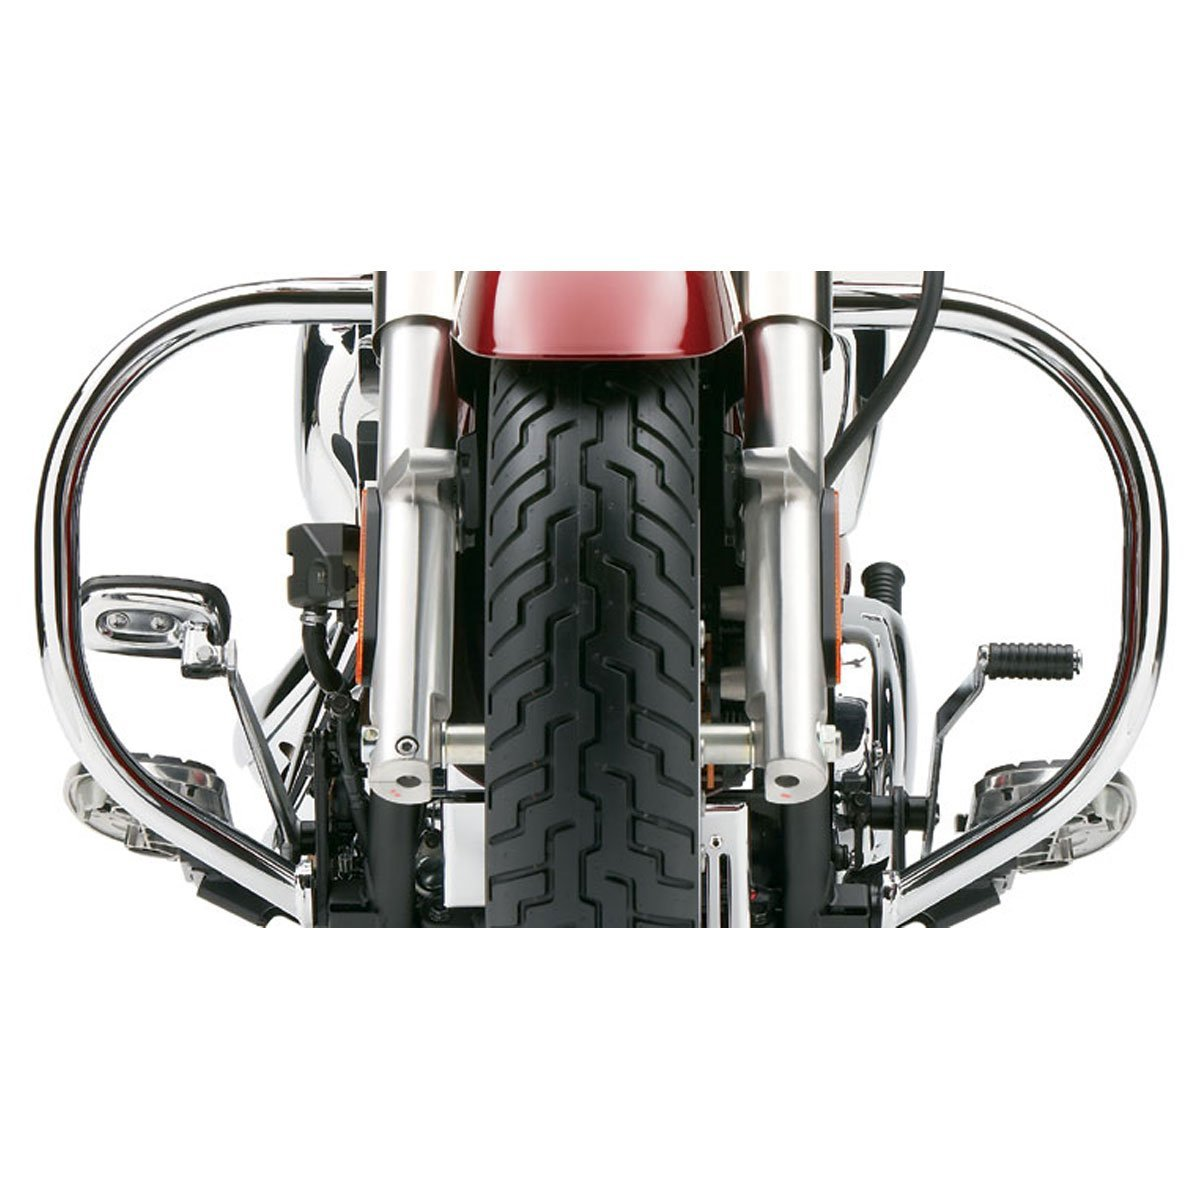 Get it delivered to your door - COBRA FATTY FREEWAY BARS For 1998-2003 Honda VT750C/CD Shadow ACE - #01-1115 - 4800 (EGP)